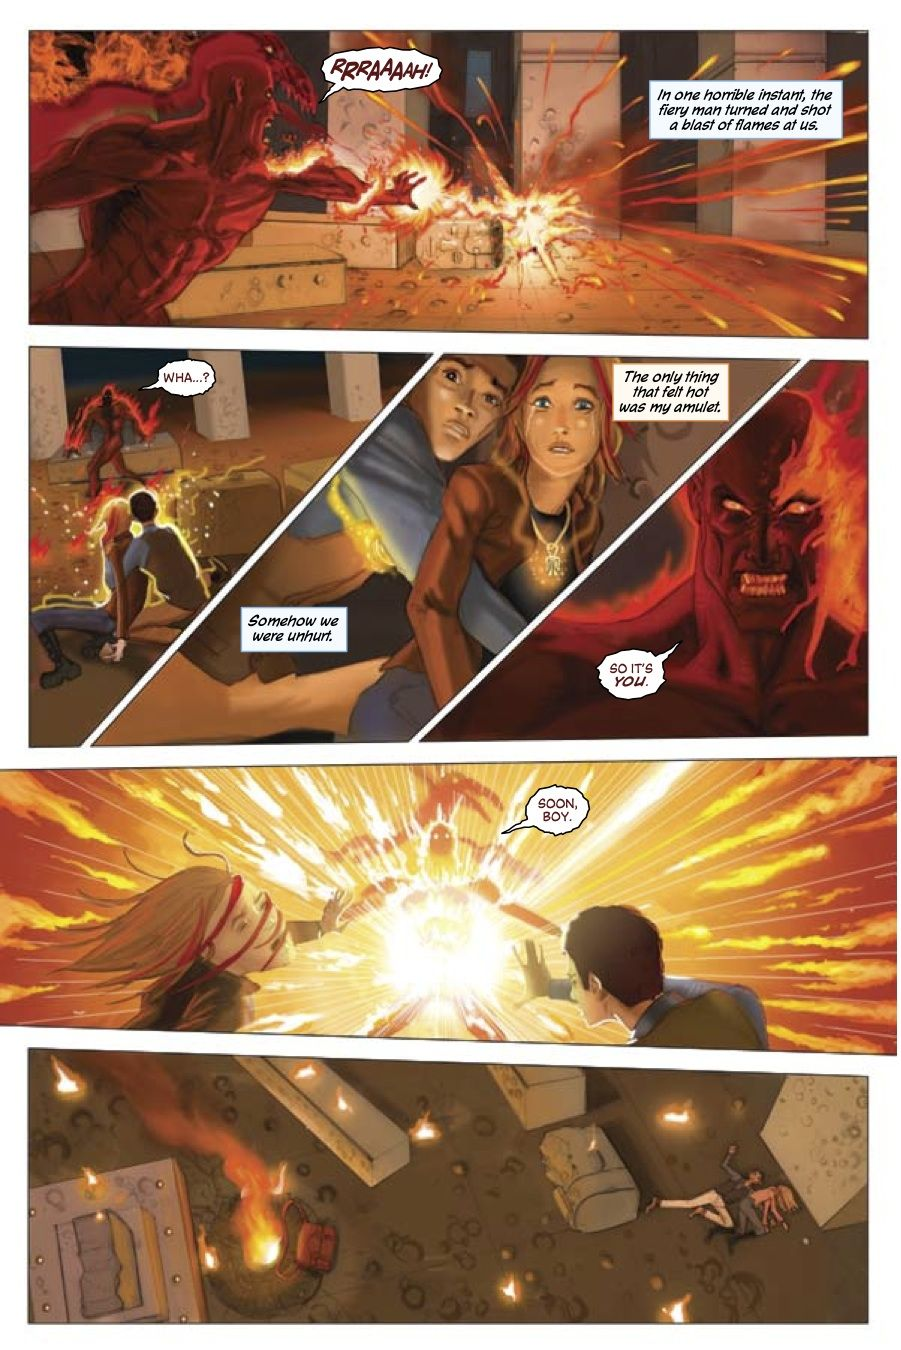 Sneak peek from Rick Riordan: More from the upcoming Red ...